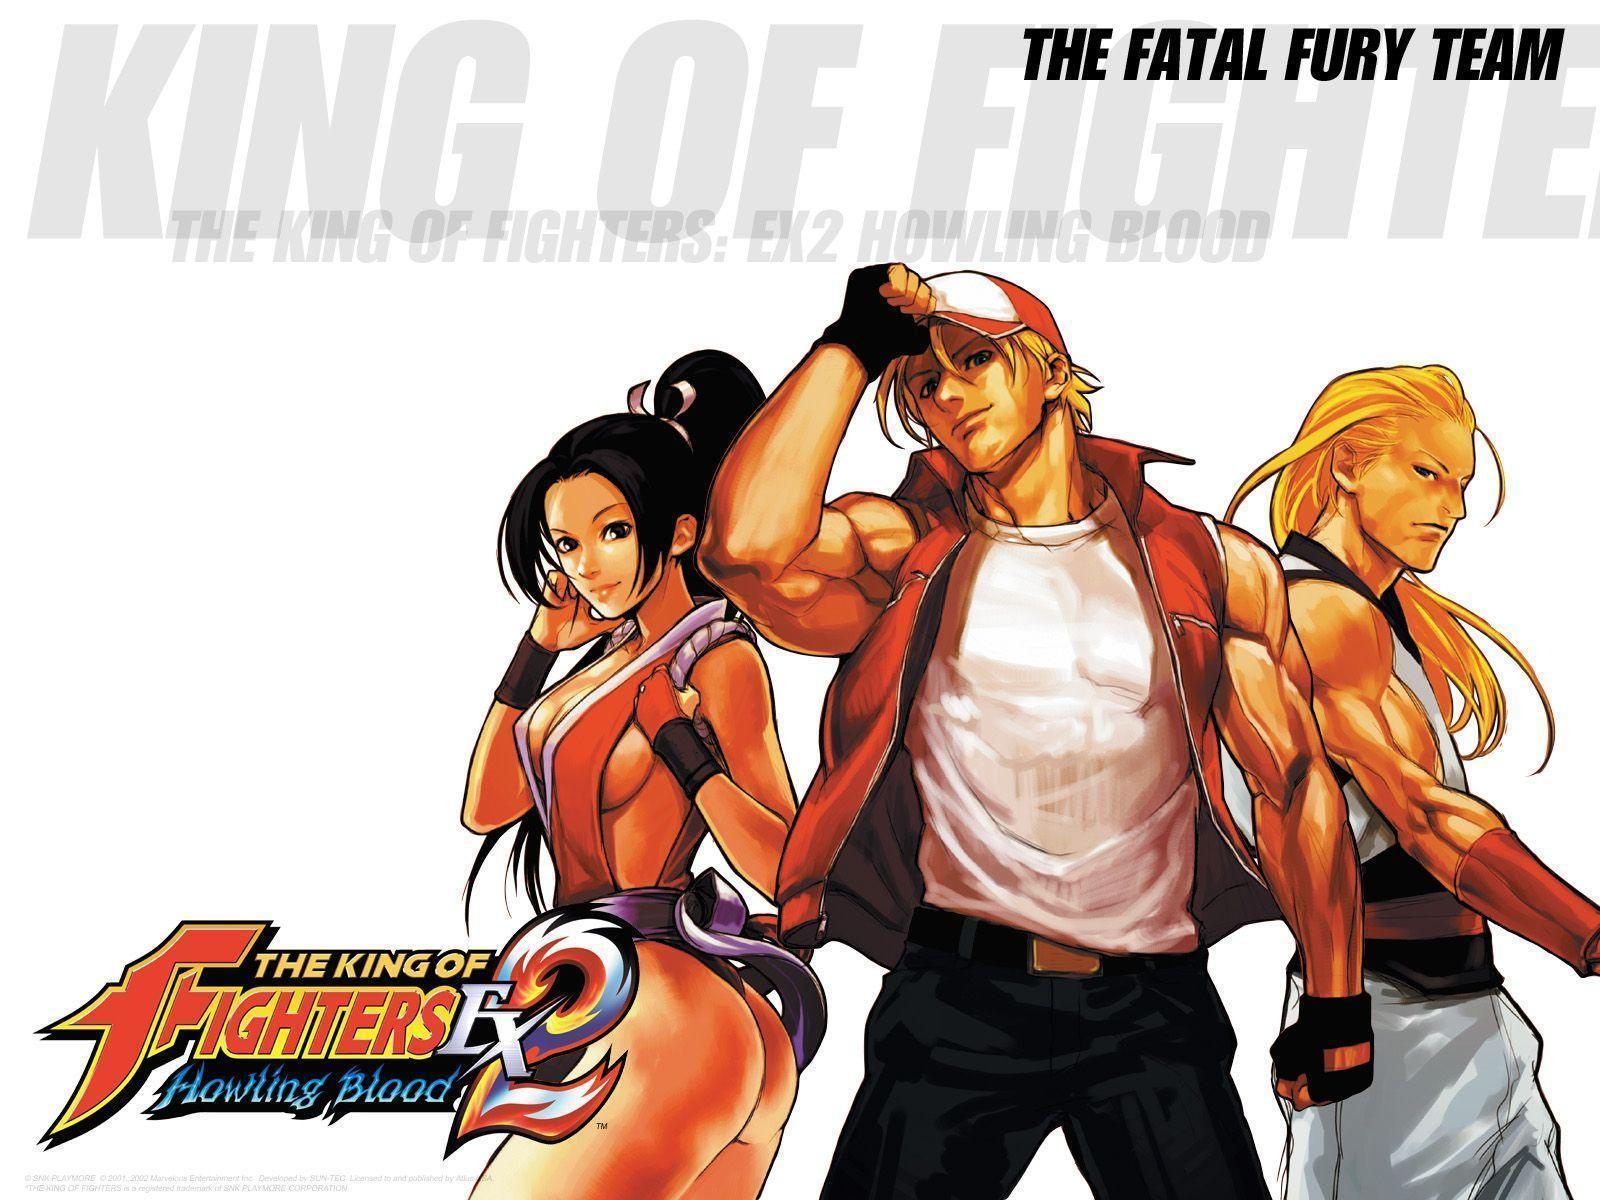 The King Of Fighters Wallpapers Wallpaper Cave Images, Photos, Reviews